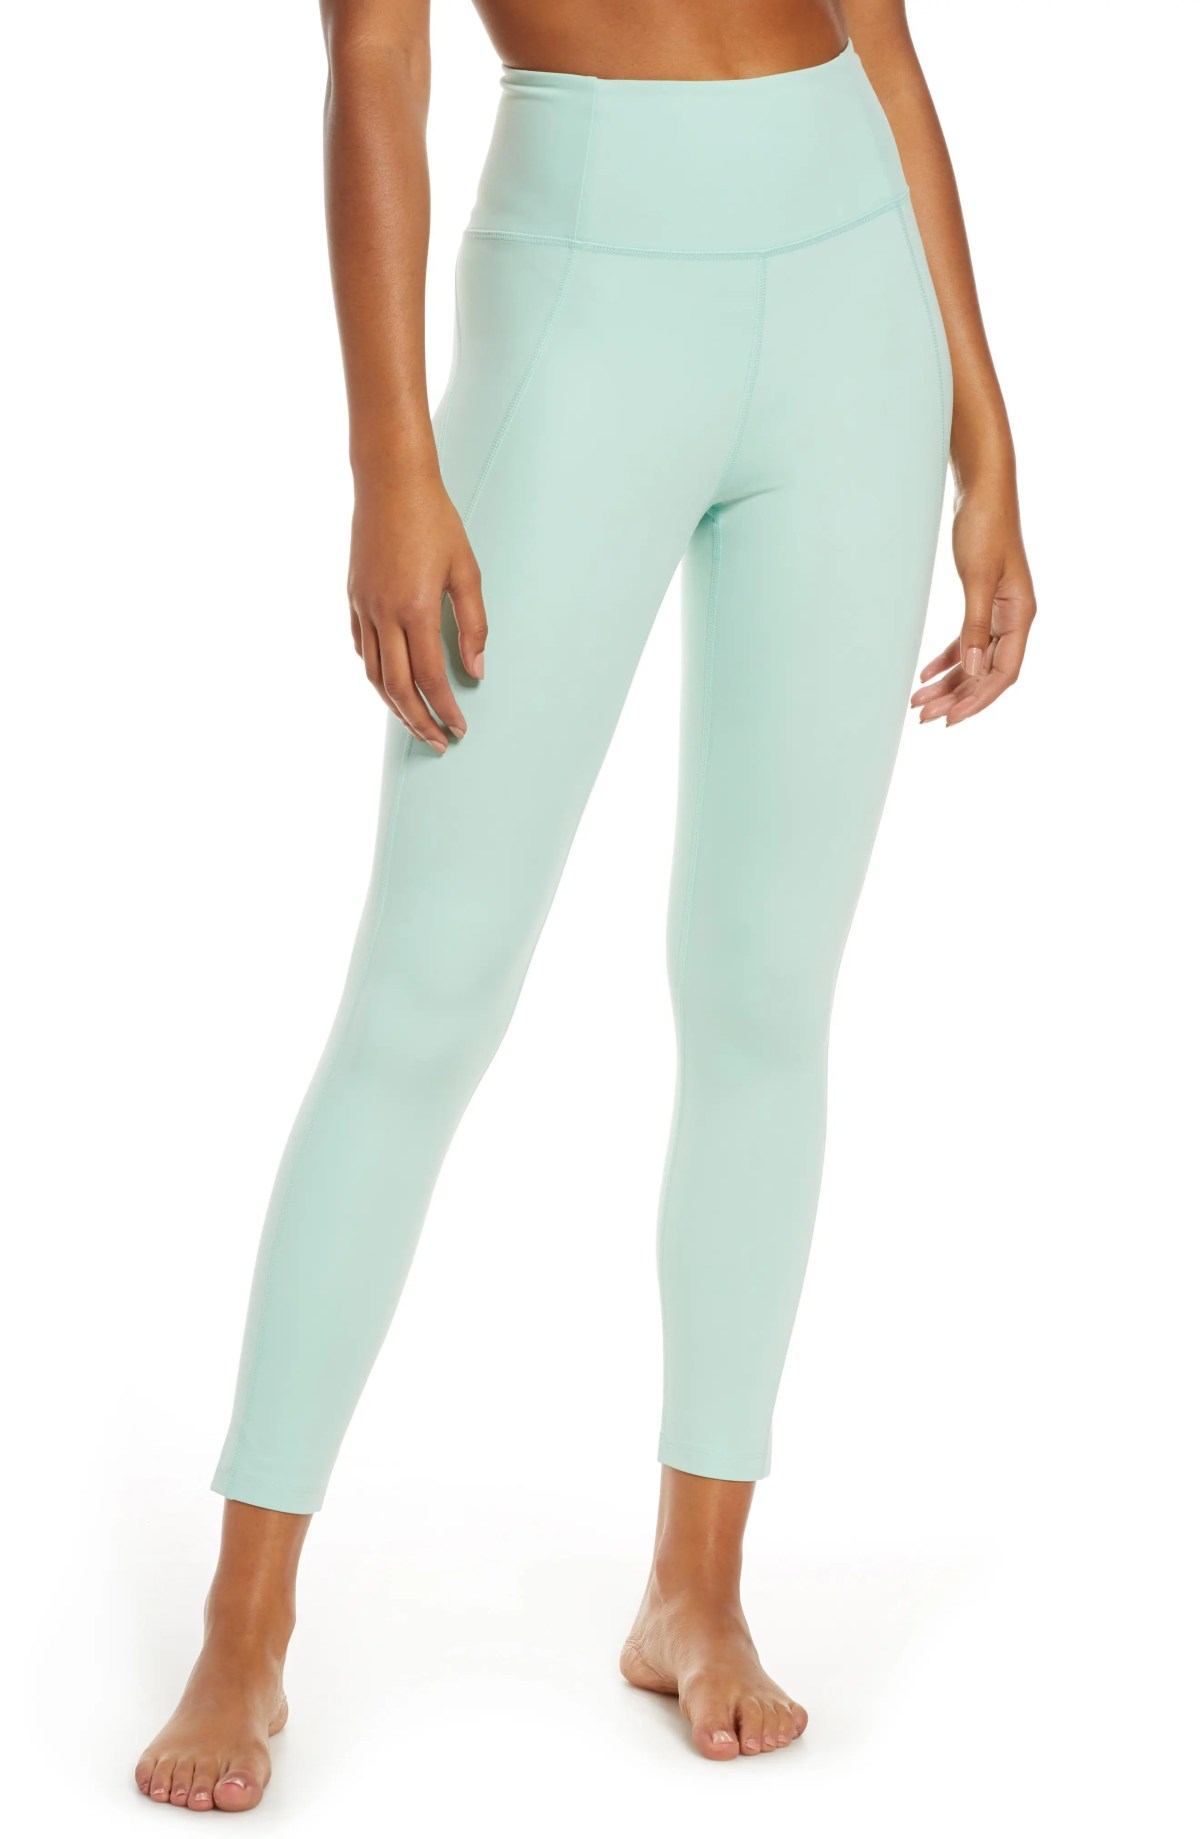 GIRLFRIEND COLLECTIVE High Waist 7/8 Leggings, Main, color, FOAM